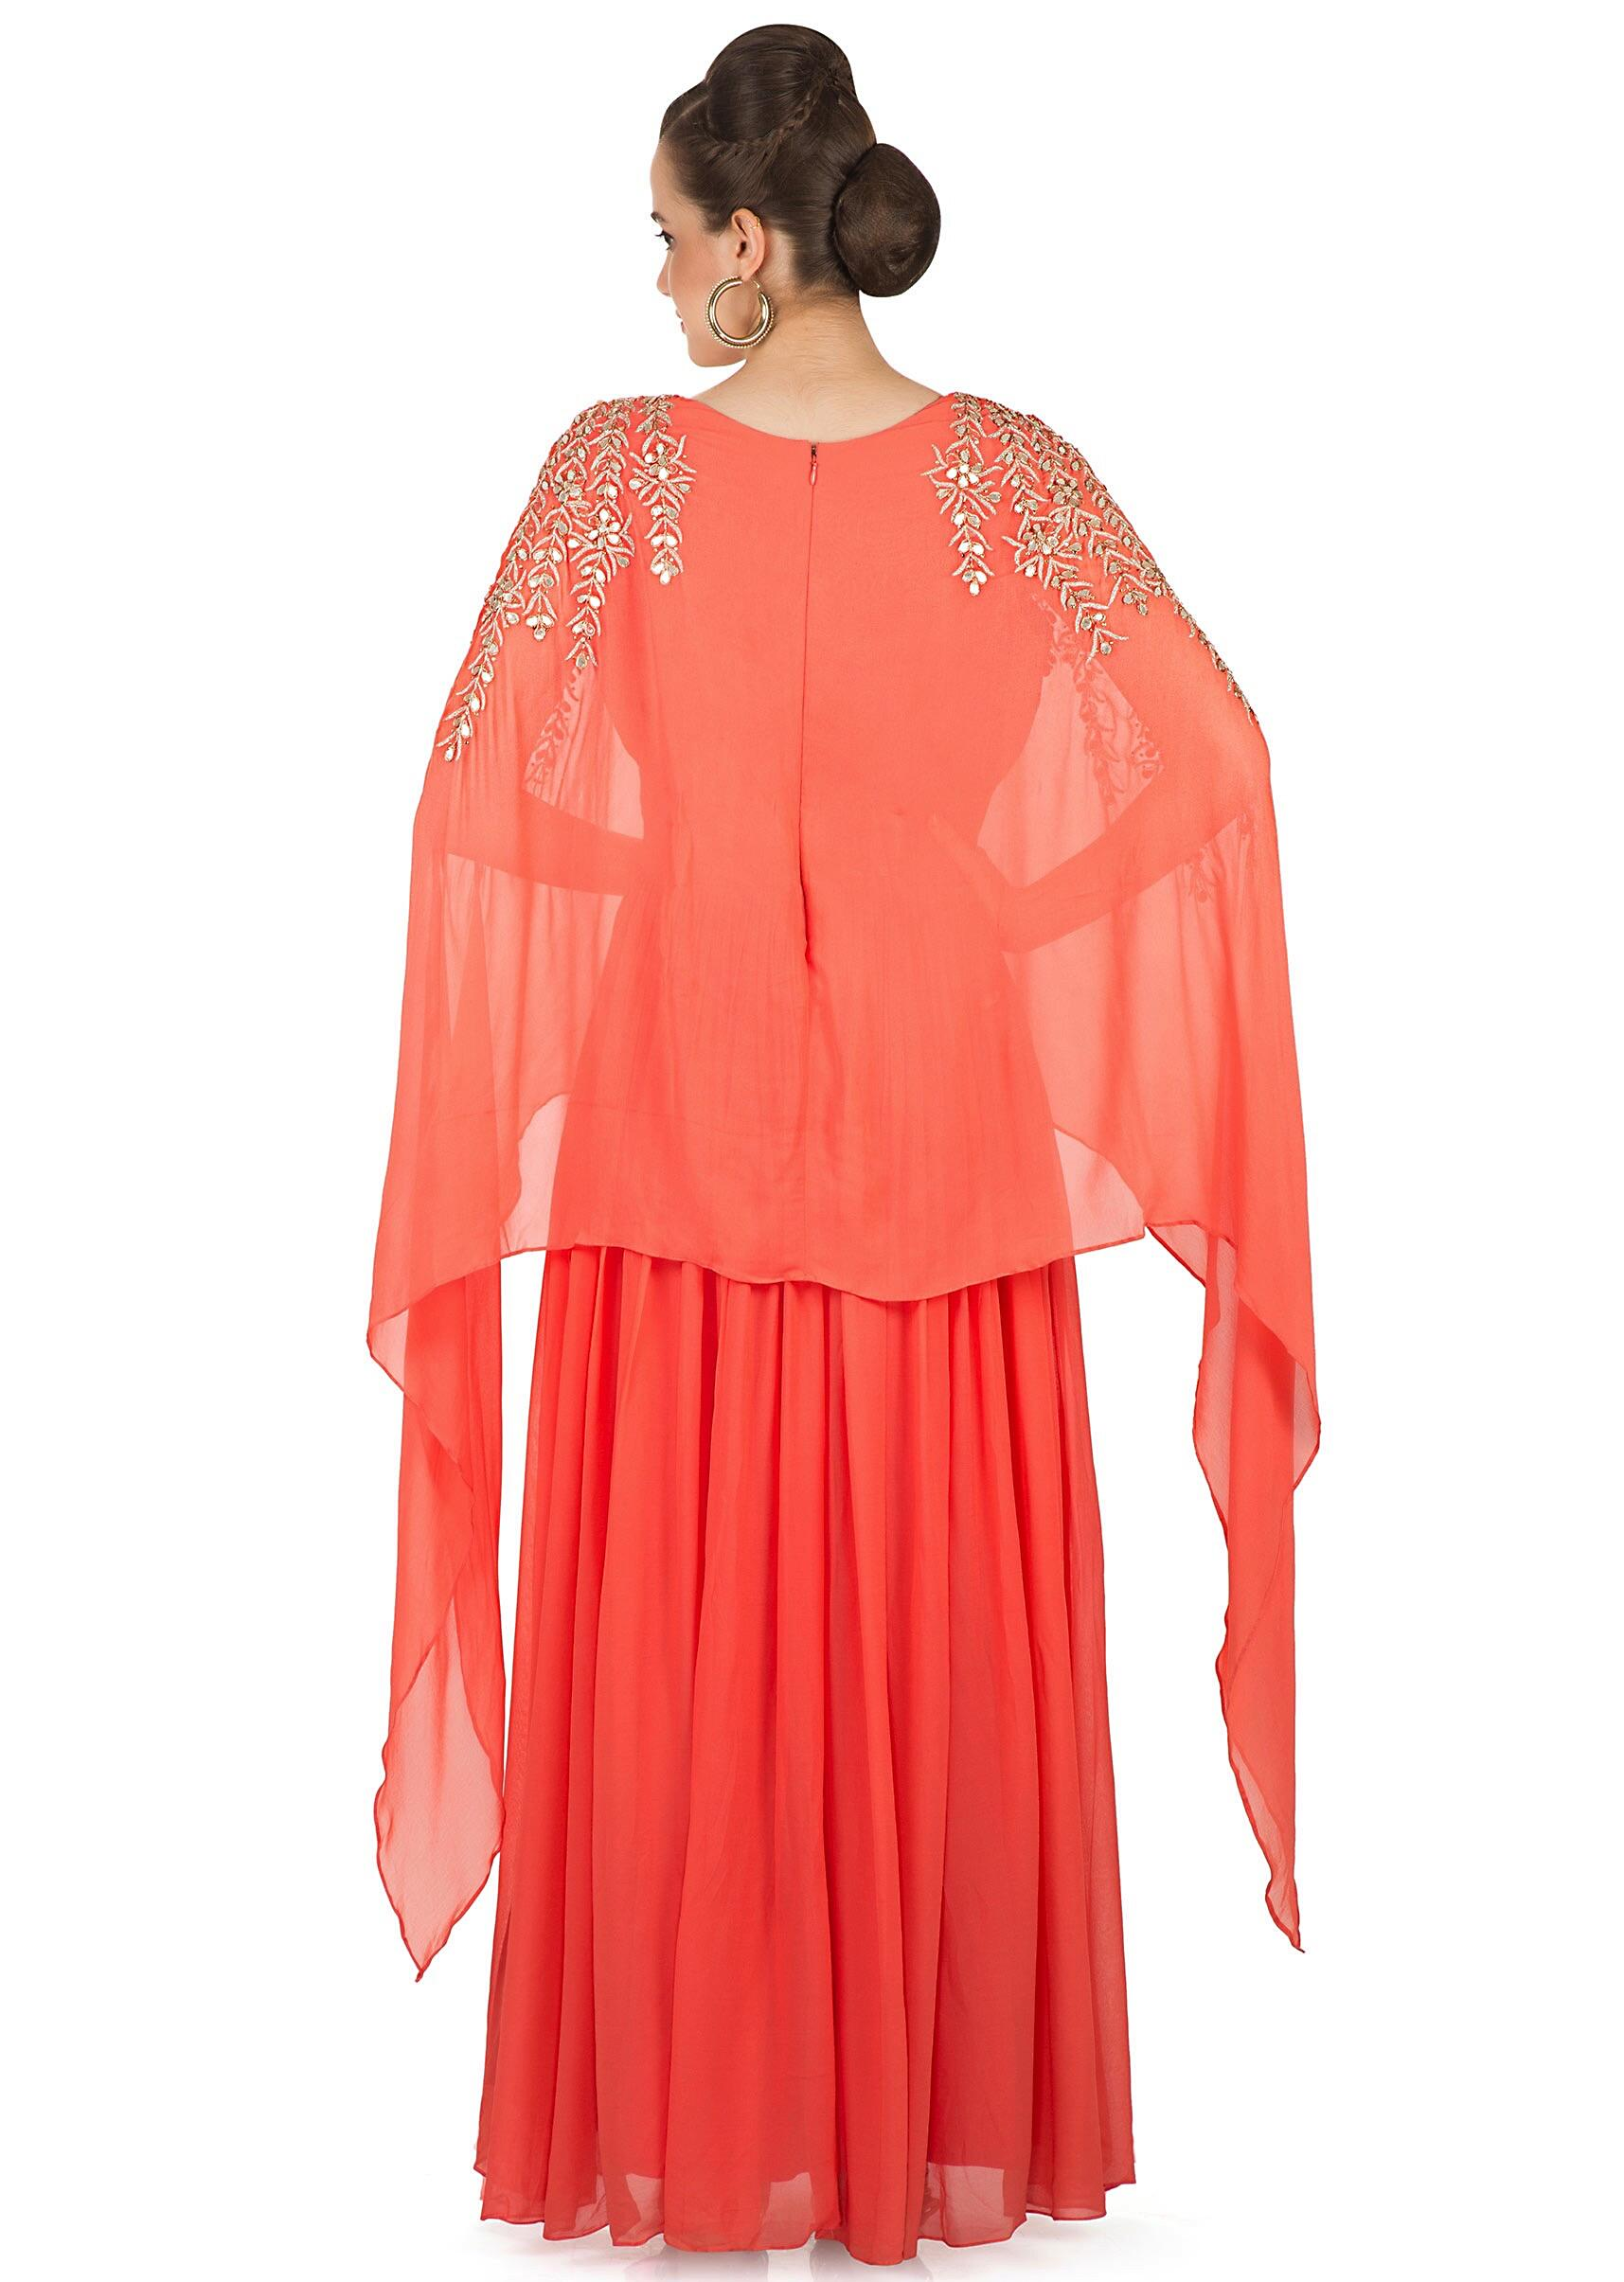 8bc3dfd193 Coral Orange Georgette Gown Styled with a Zari Cape